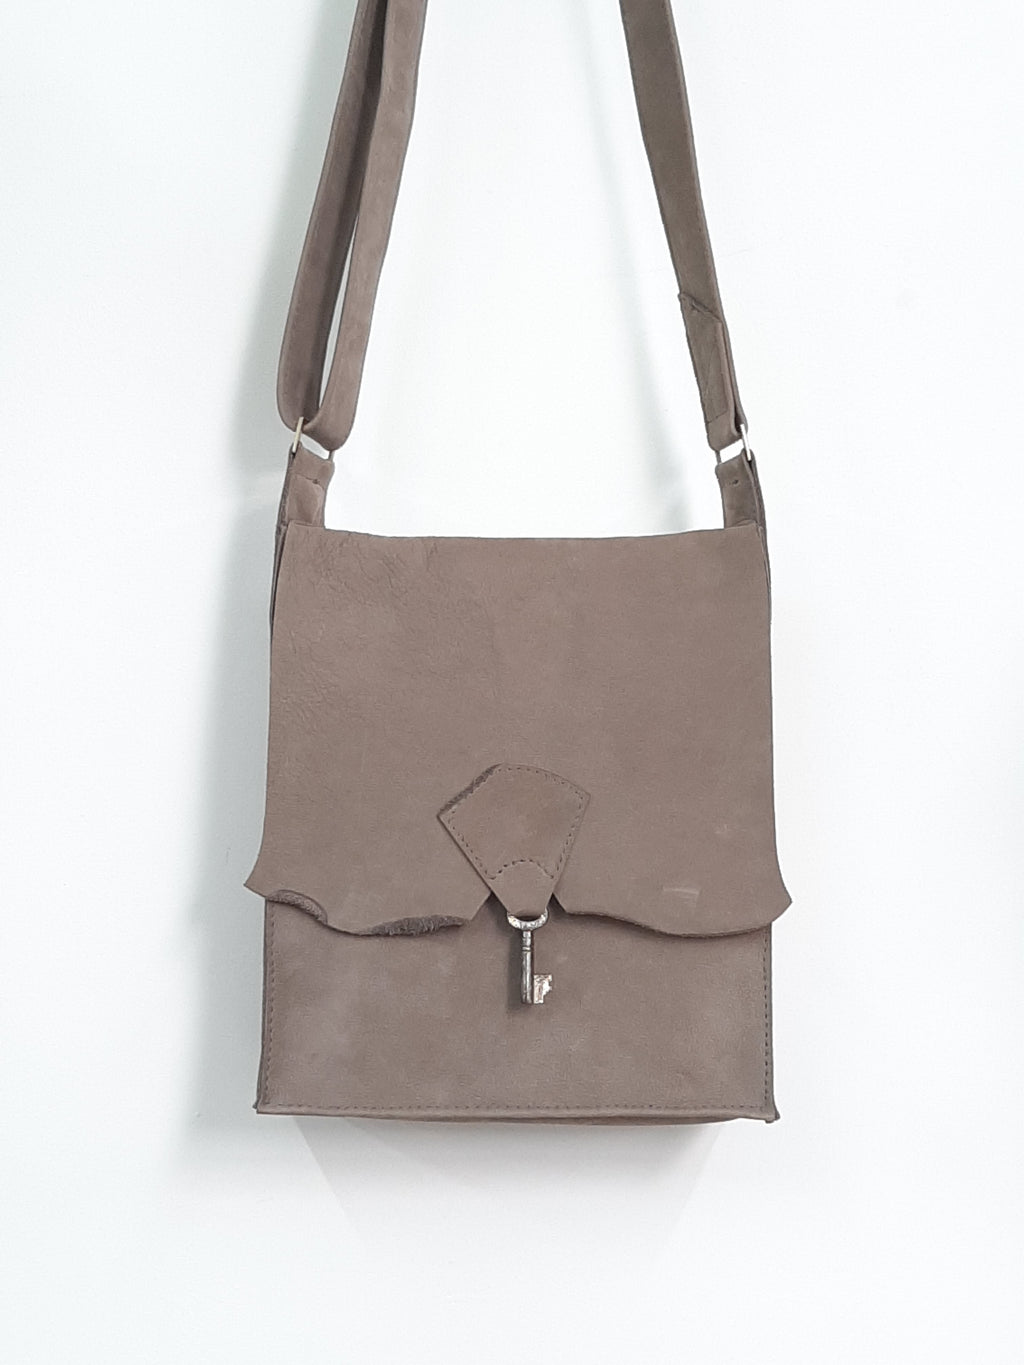 Raw Edge Leather Bag with Vintage Key Detail - Velvet Grey - Coterie Leather Bags